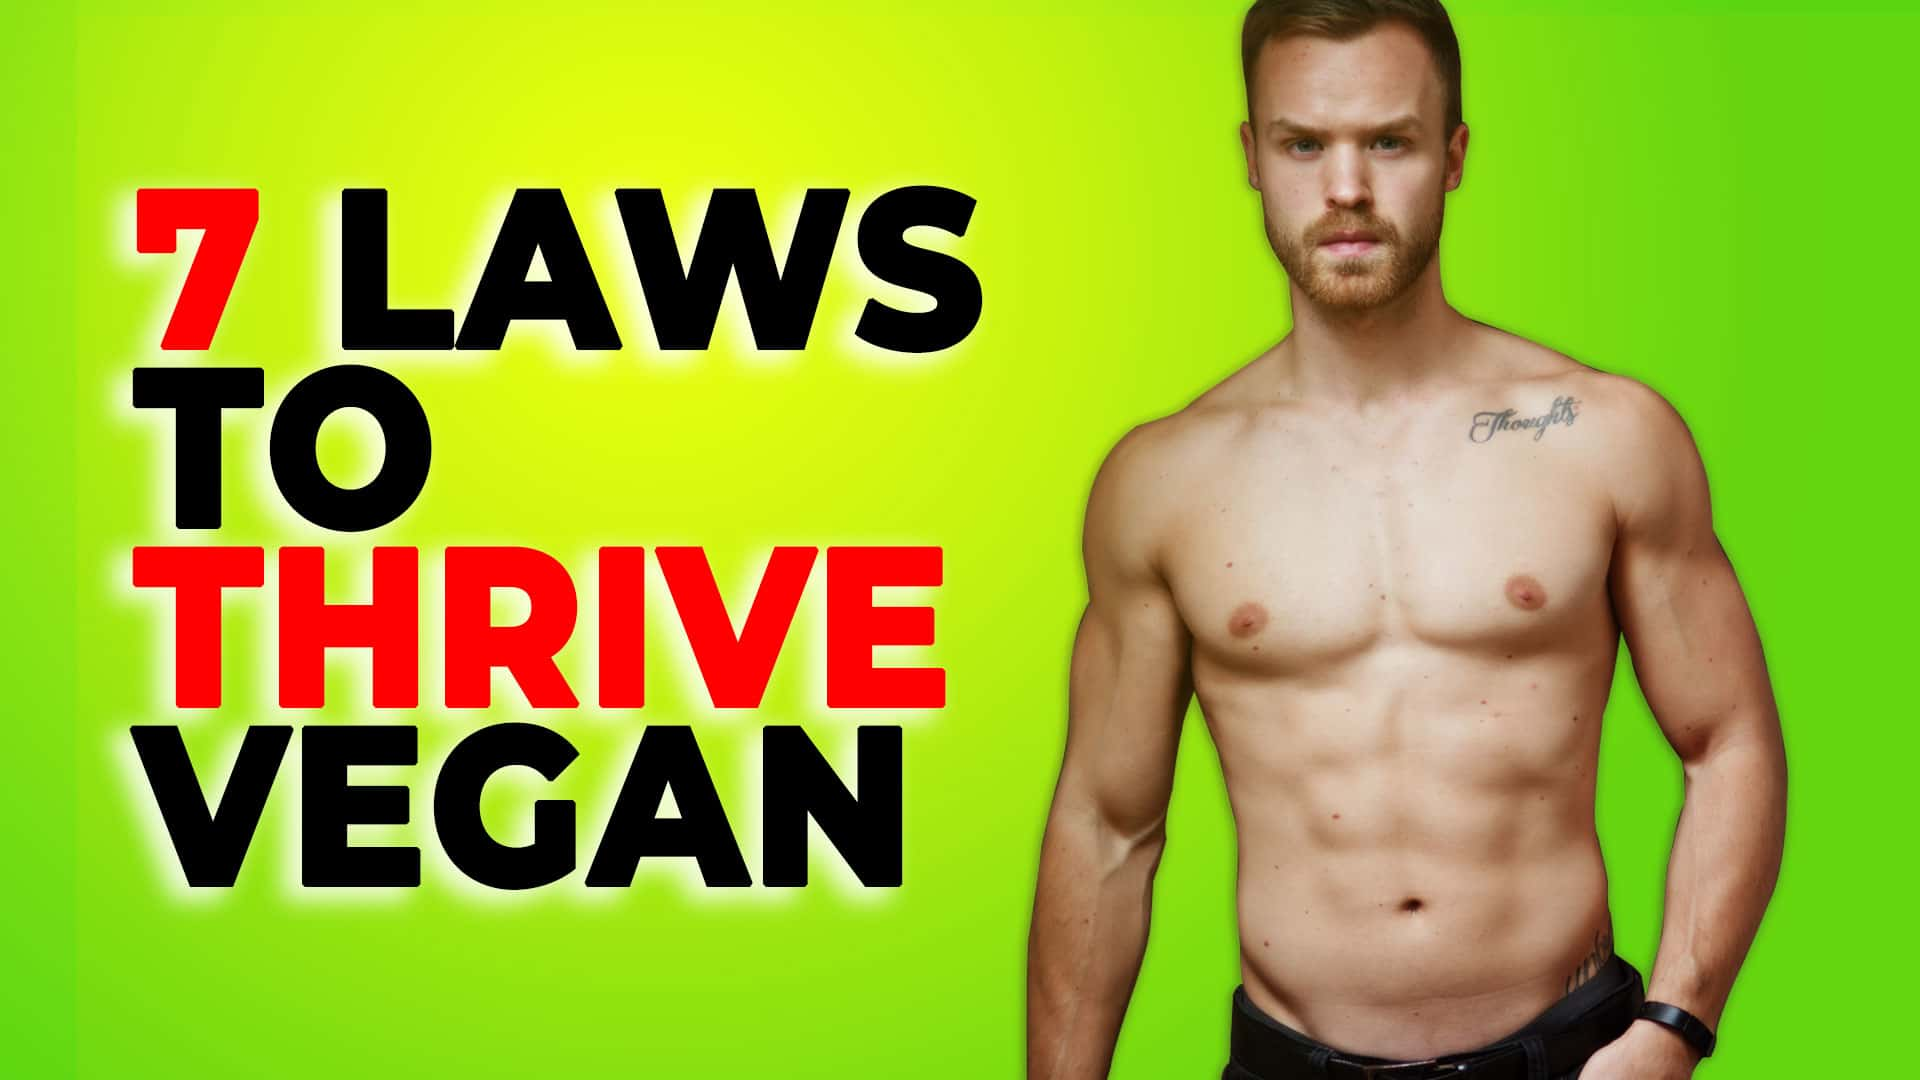 7-[TIMELESS]-Laws-For-Thriving-On-A-Vegan-Diet